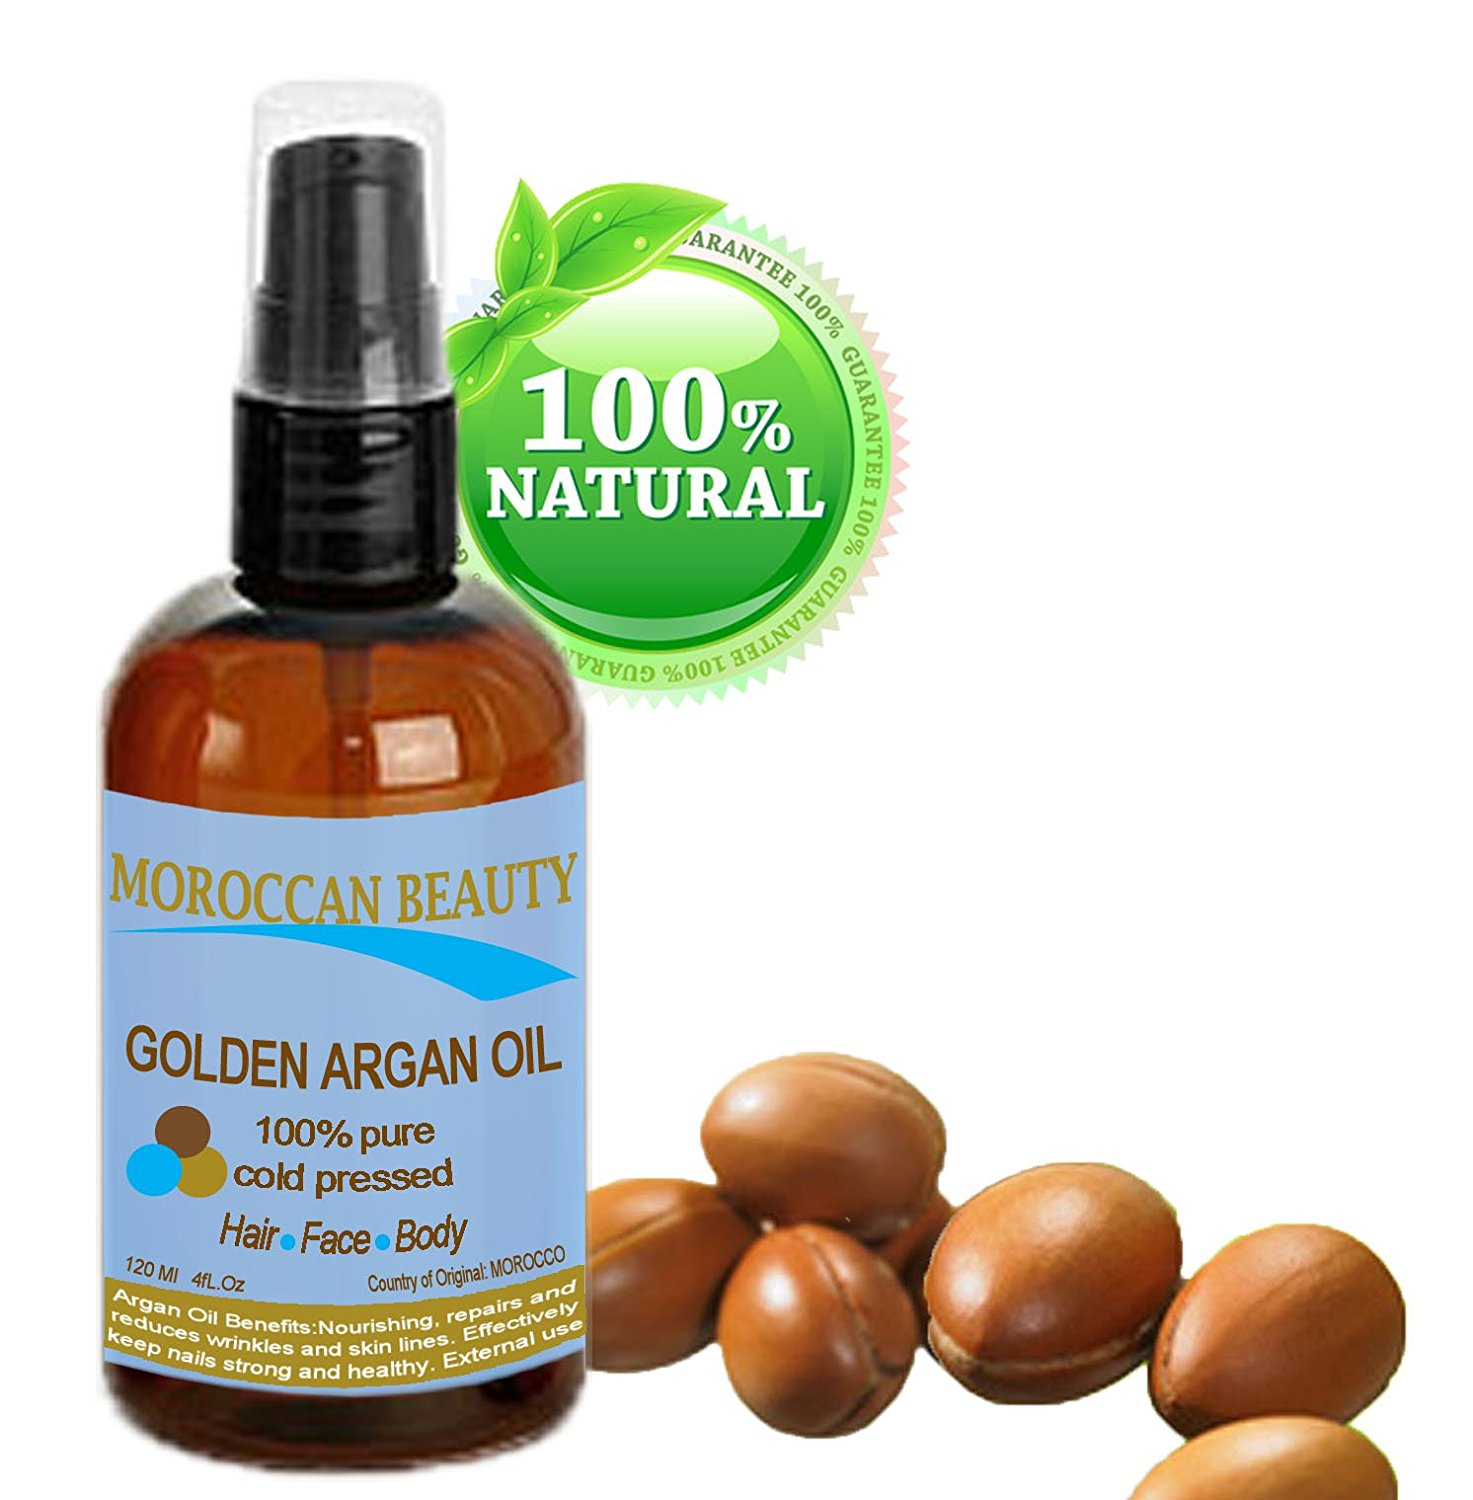 Moroccan Beauty Golden Argan Oil, 100% Pure, Cold Pressed, for Professional Use, 4oz-120ml